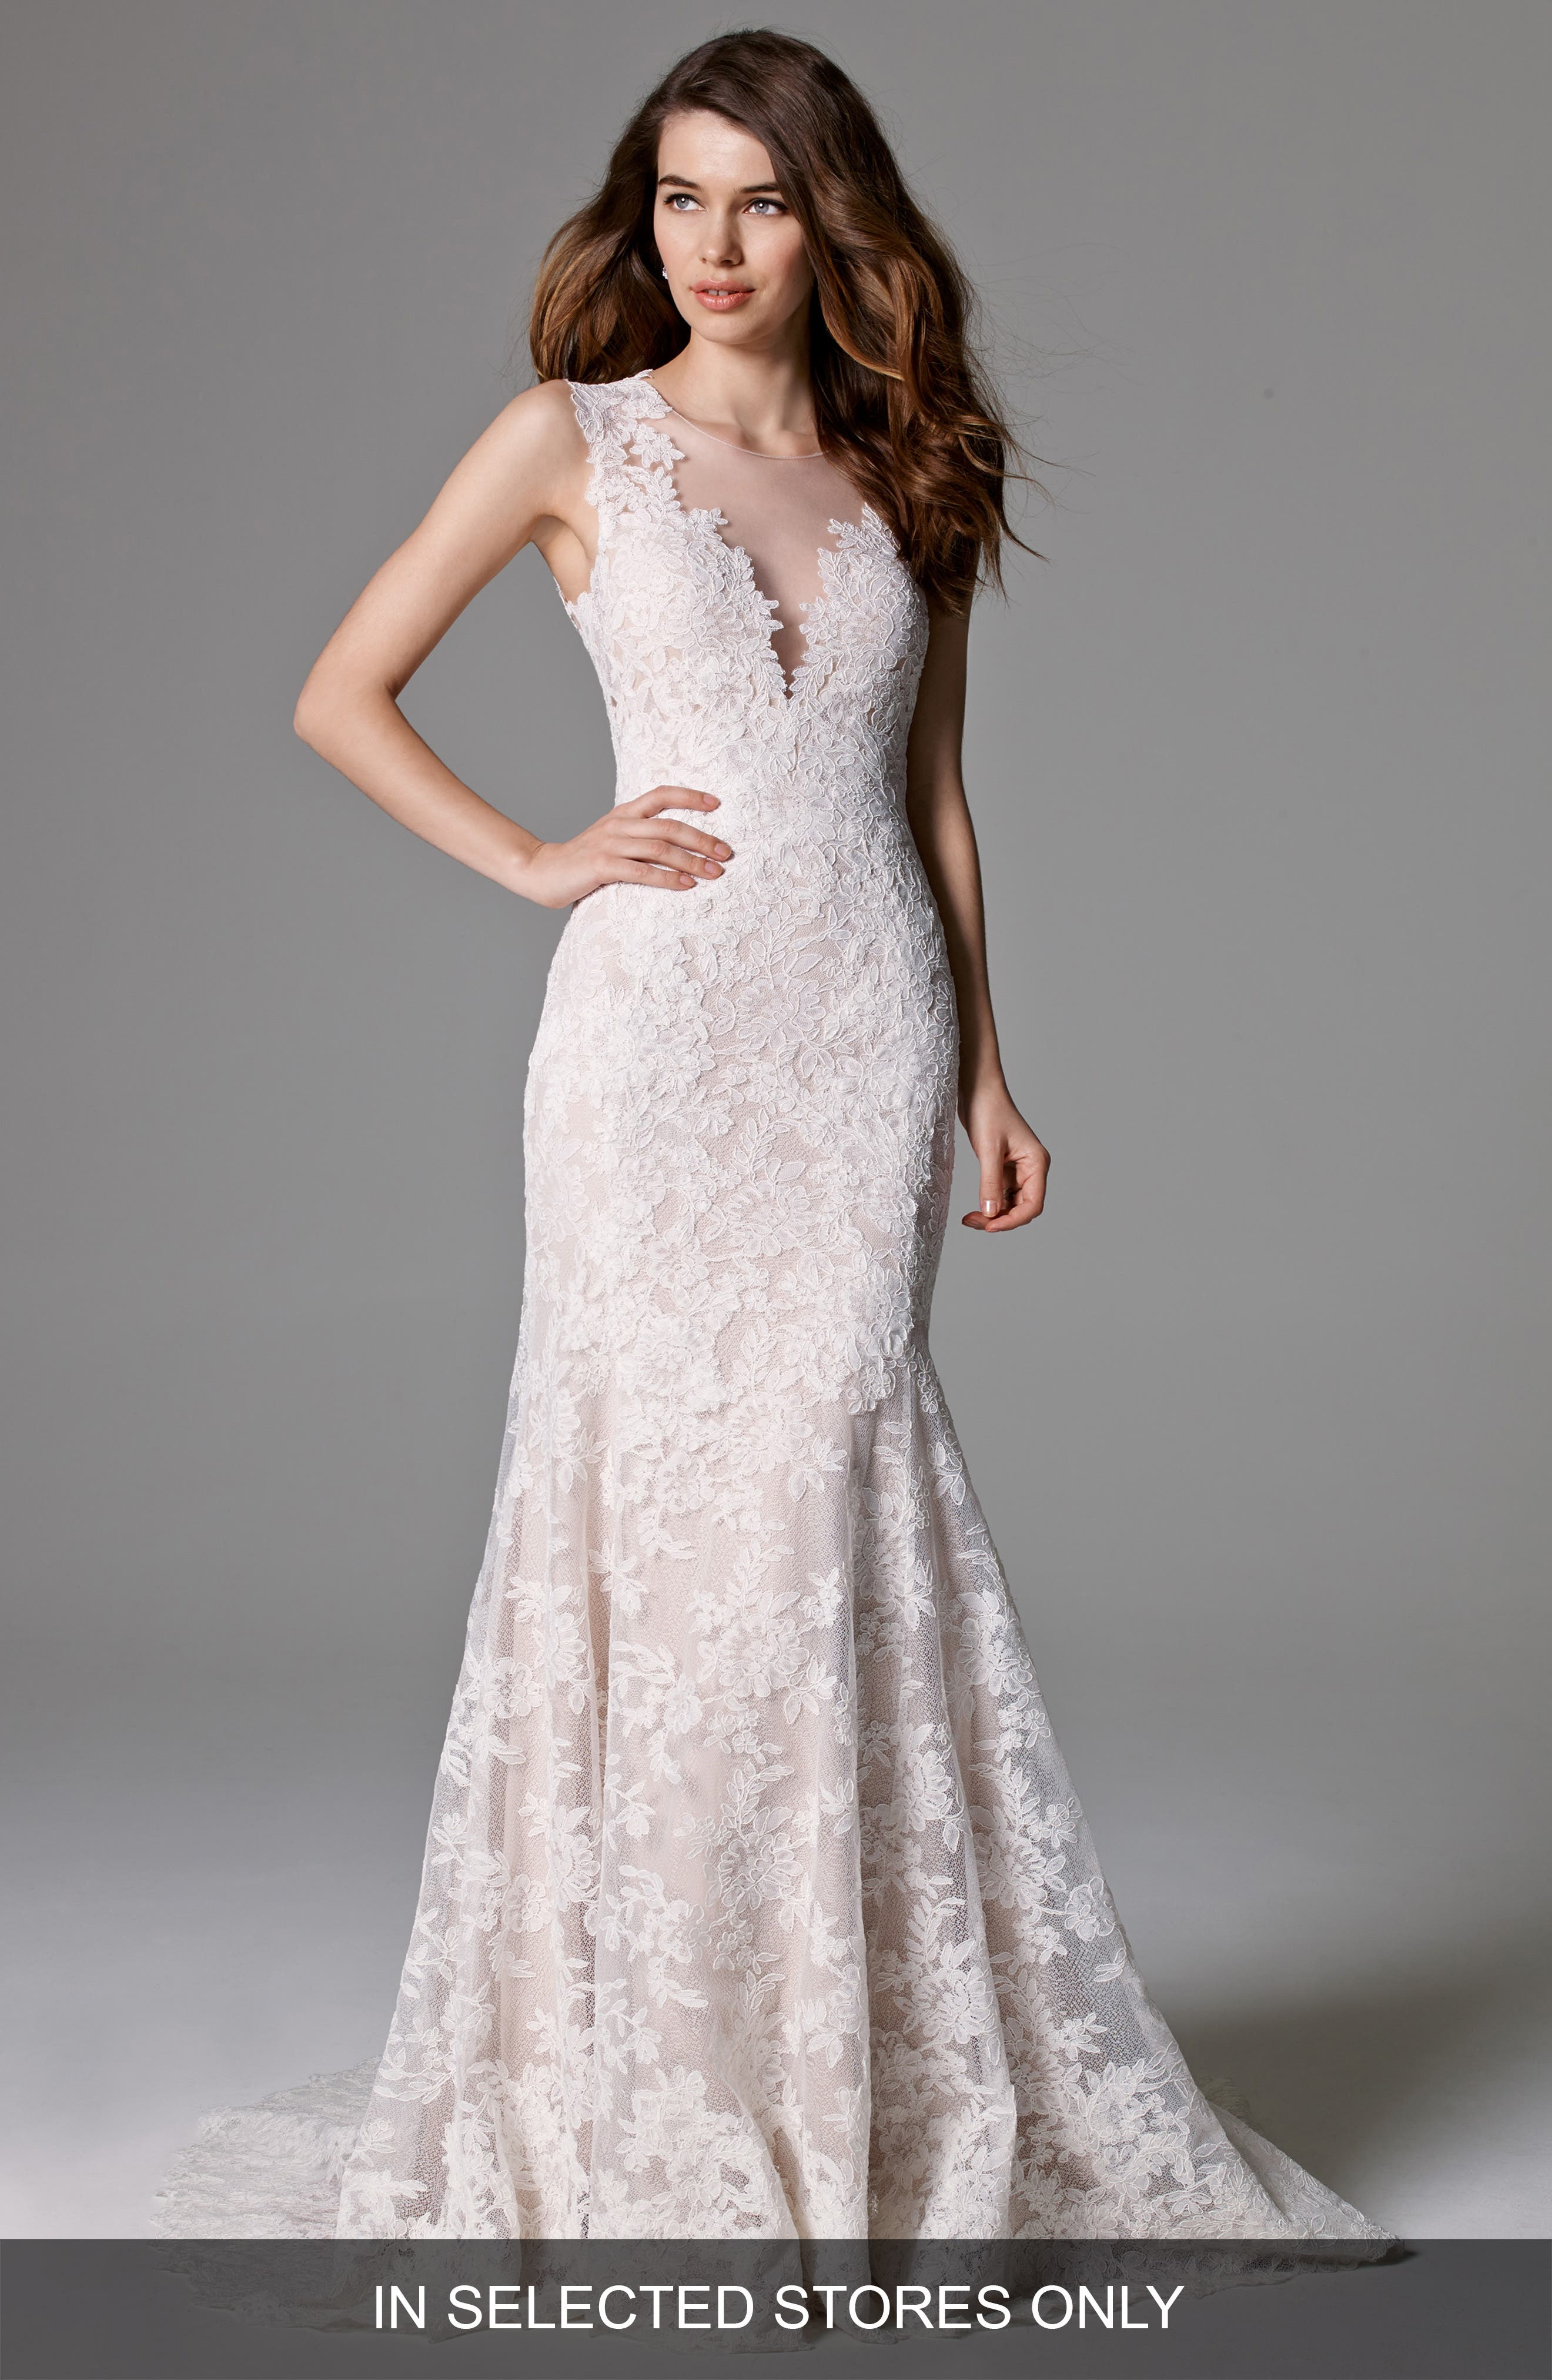 Watters 'Ashland' Illusion Lace Mermaid Dress (In Stores Only)